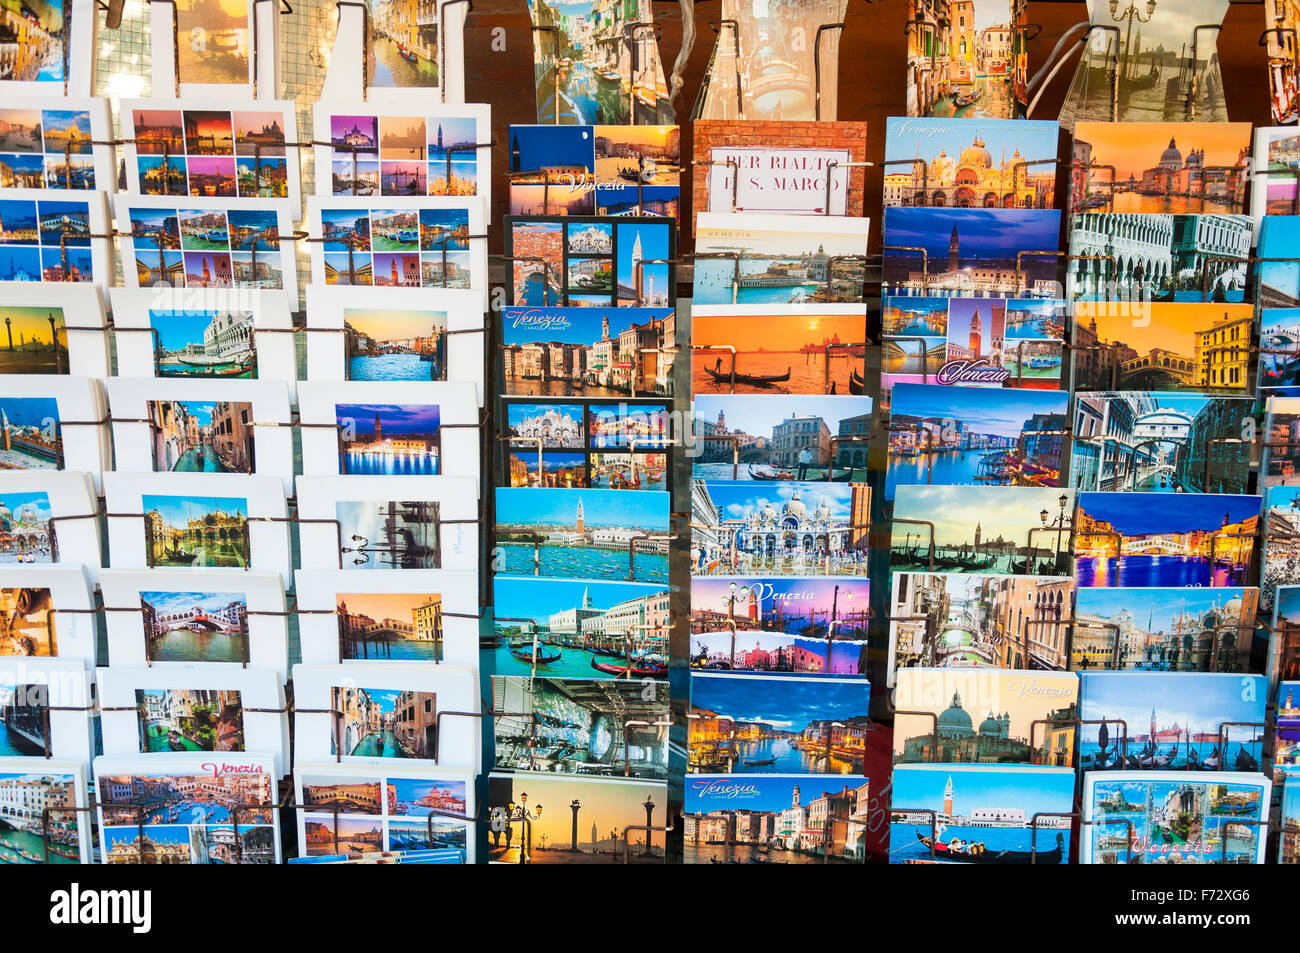 Postcards for sale in Venice, Italy - Stock Image